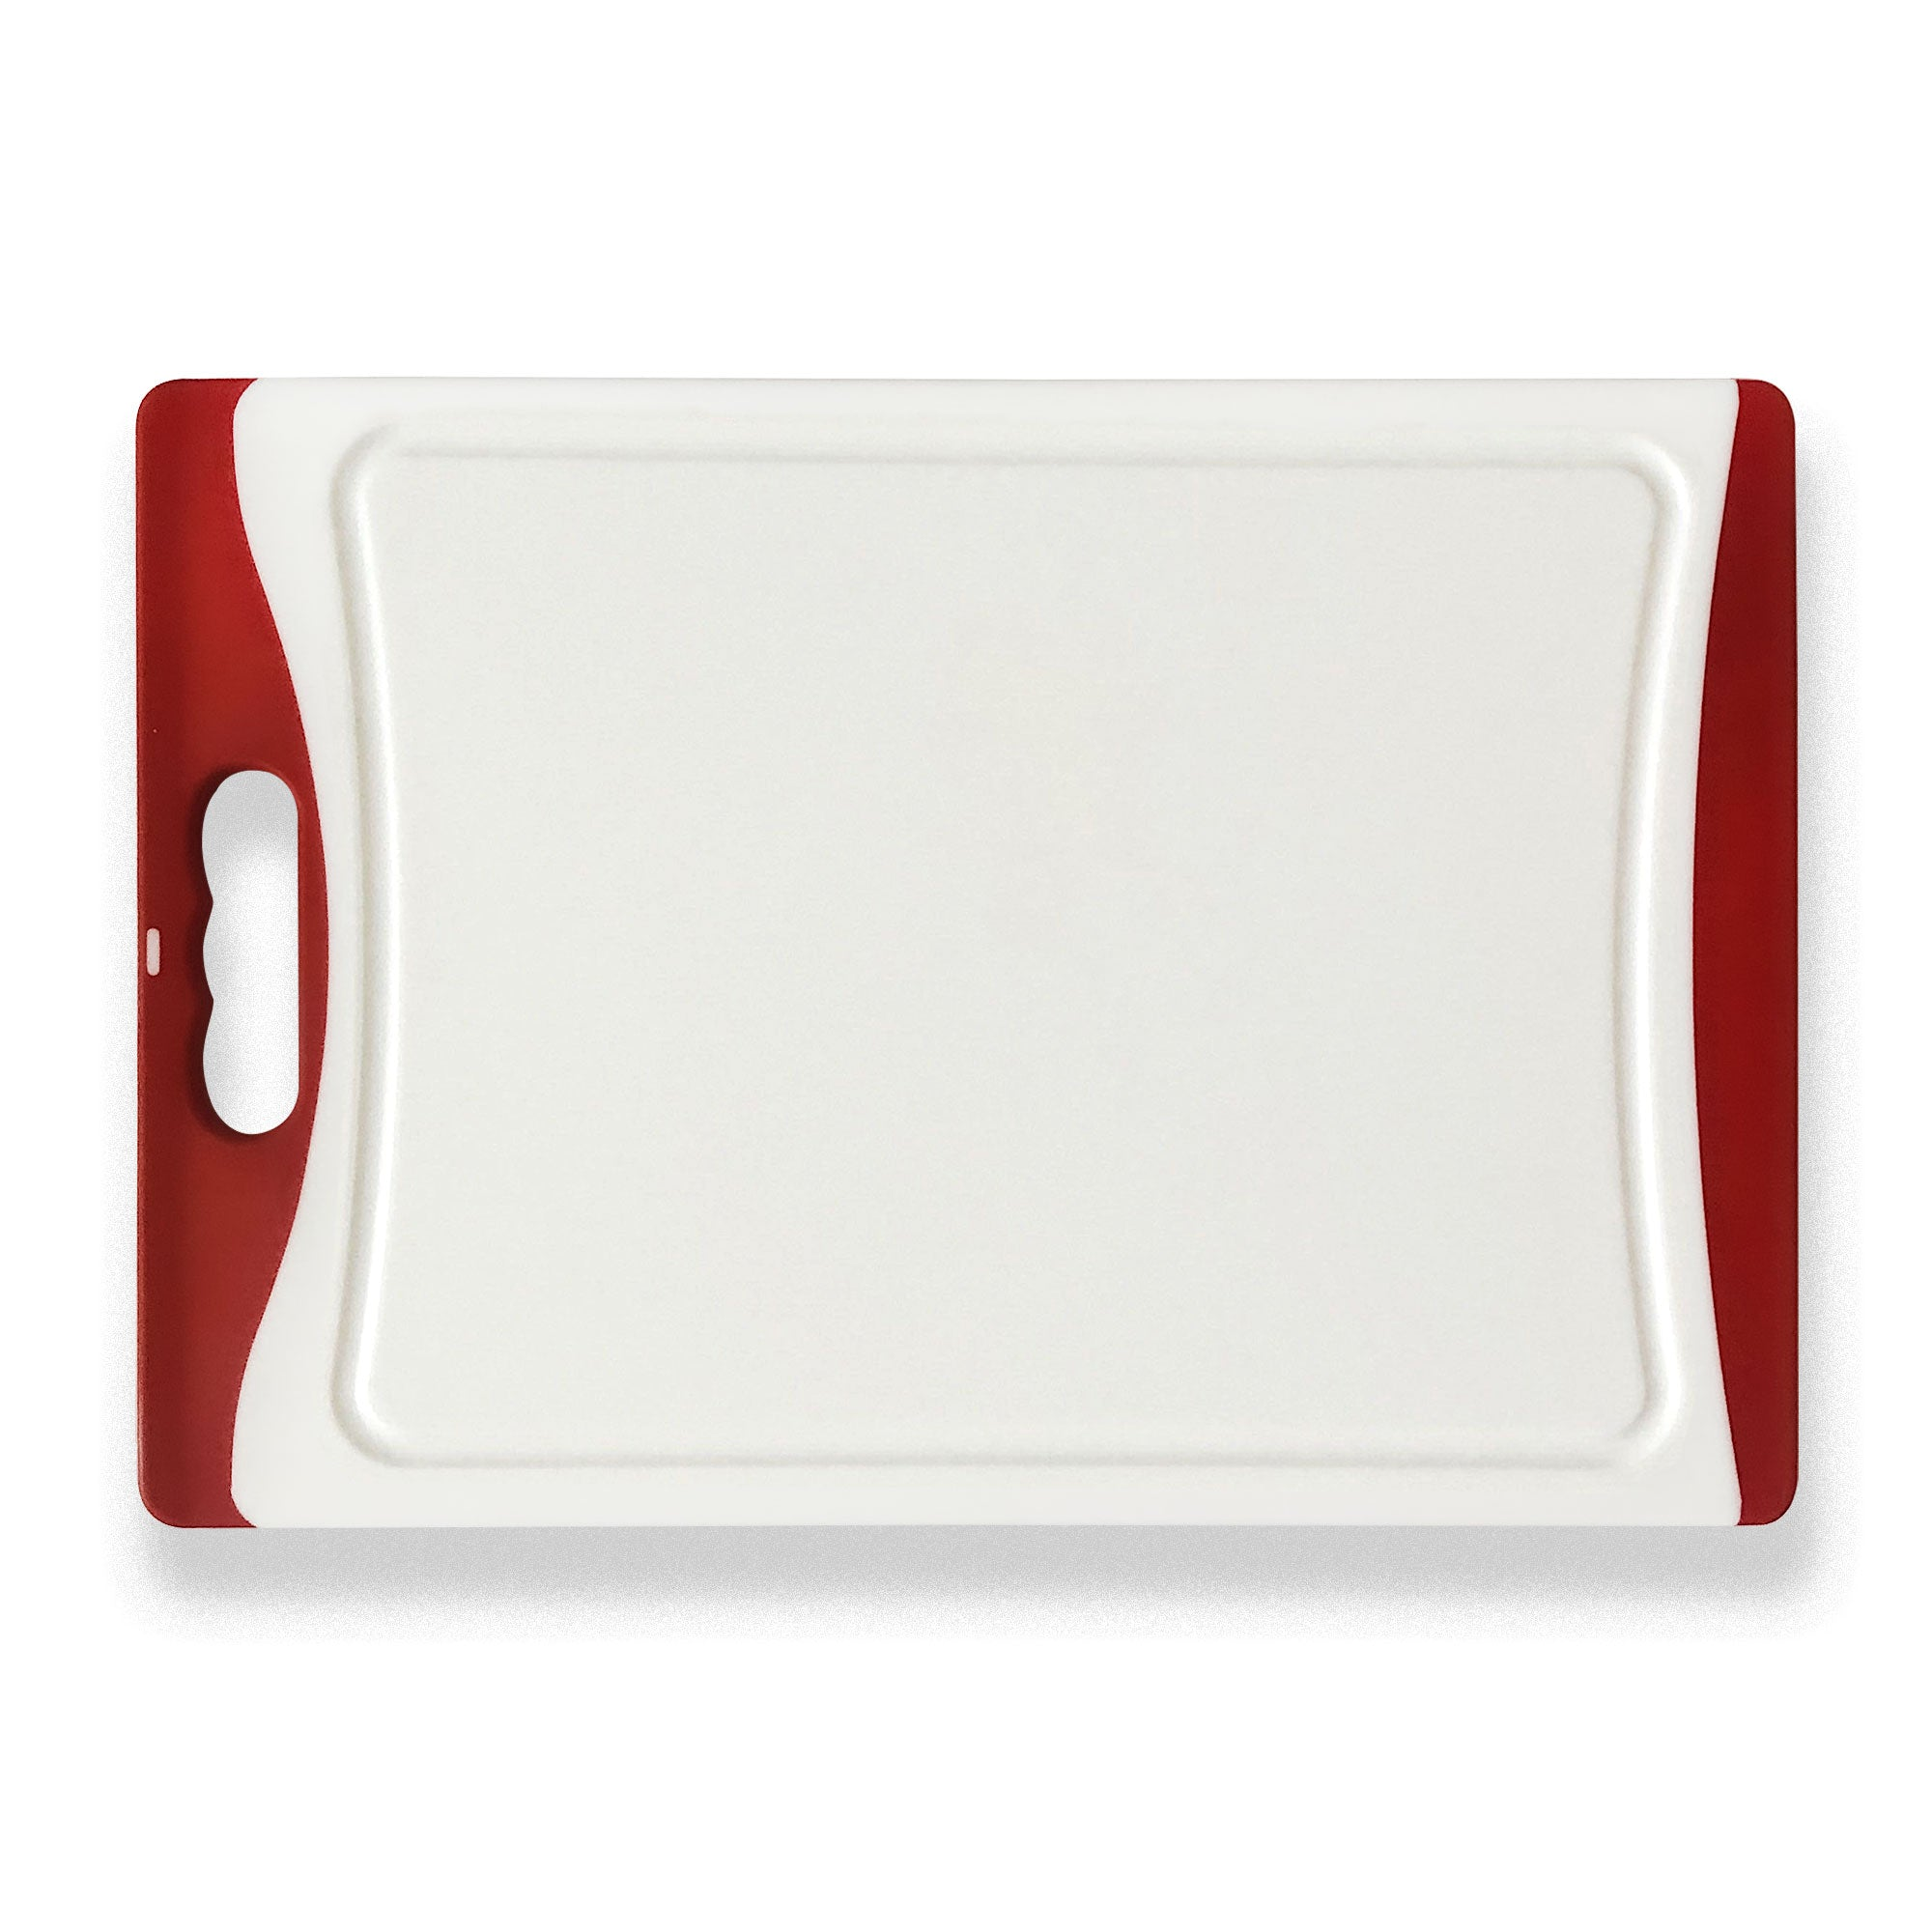 Medium Plastic Chopping Board - Red 14.1""